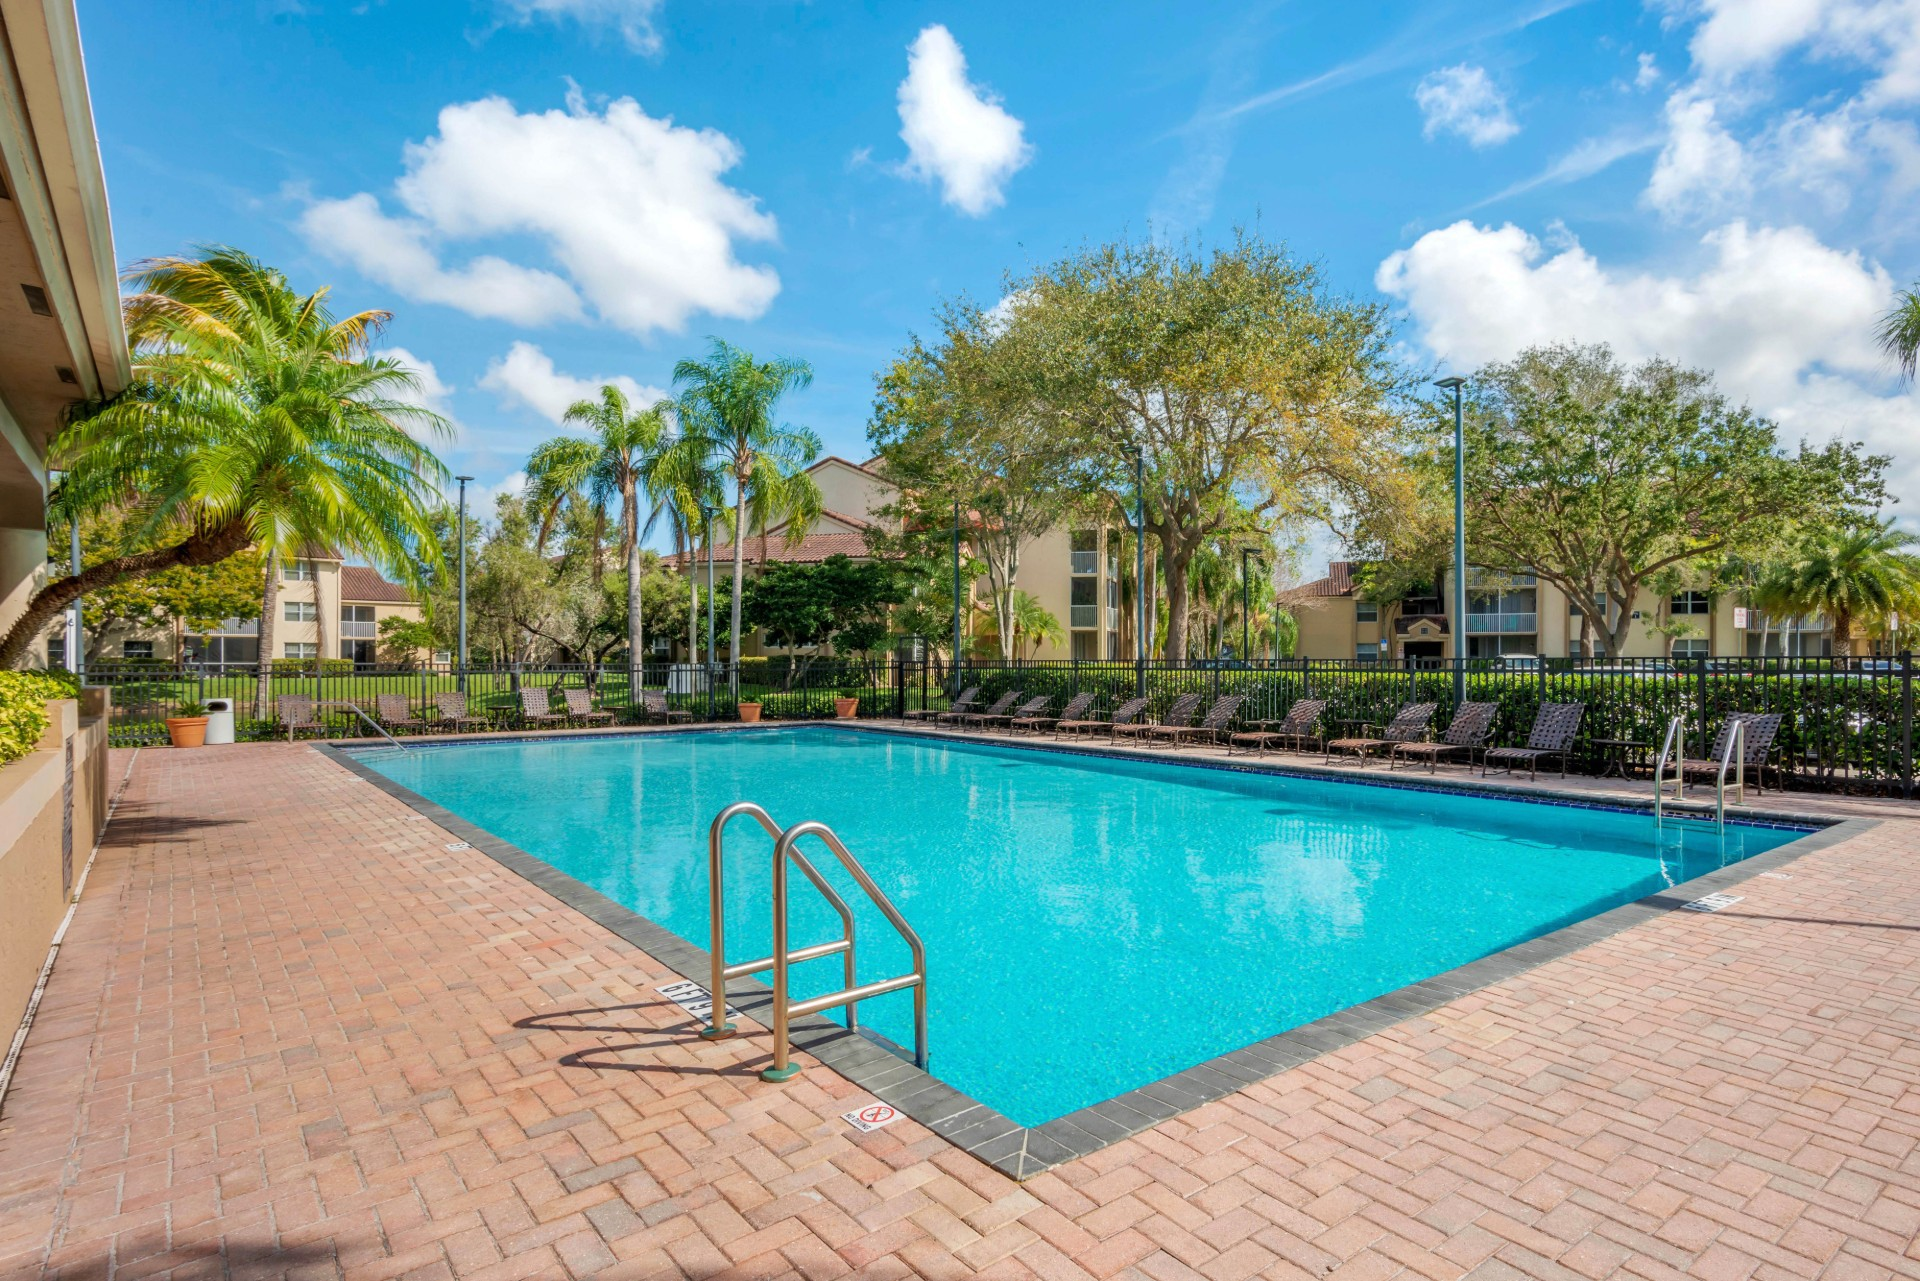 Apartments Near Everest Welleby Lake Club Apartments for Everest University Students in Pompano Beach, FL